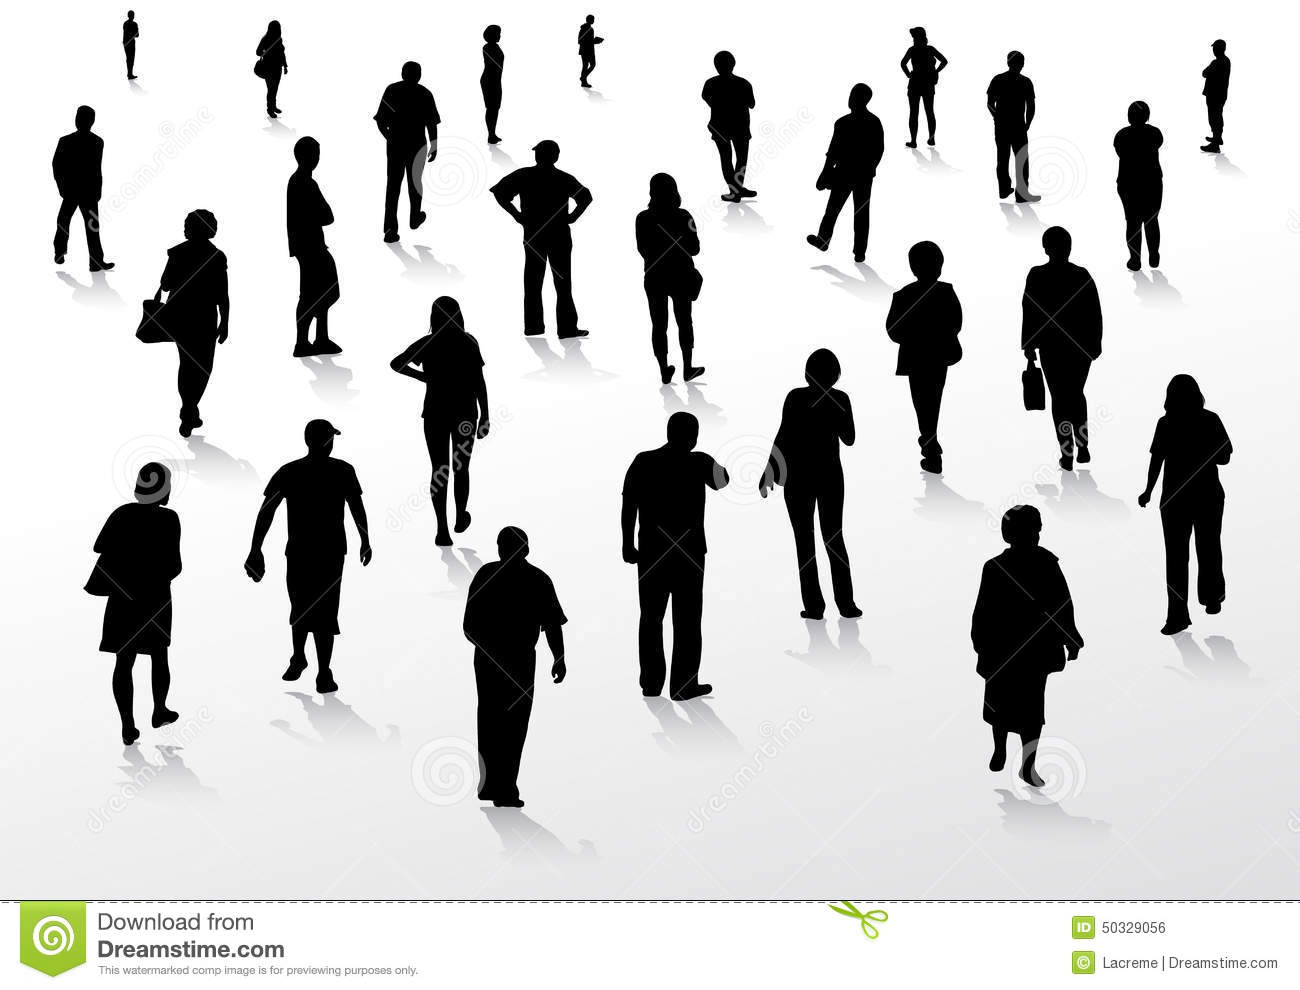 People Walking Silhouettes Adult Casual Royalty Free Vector